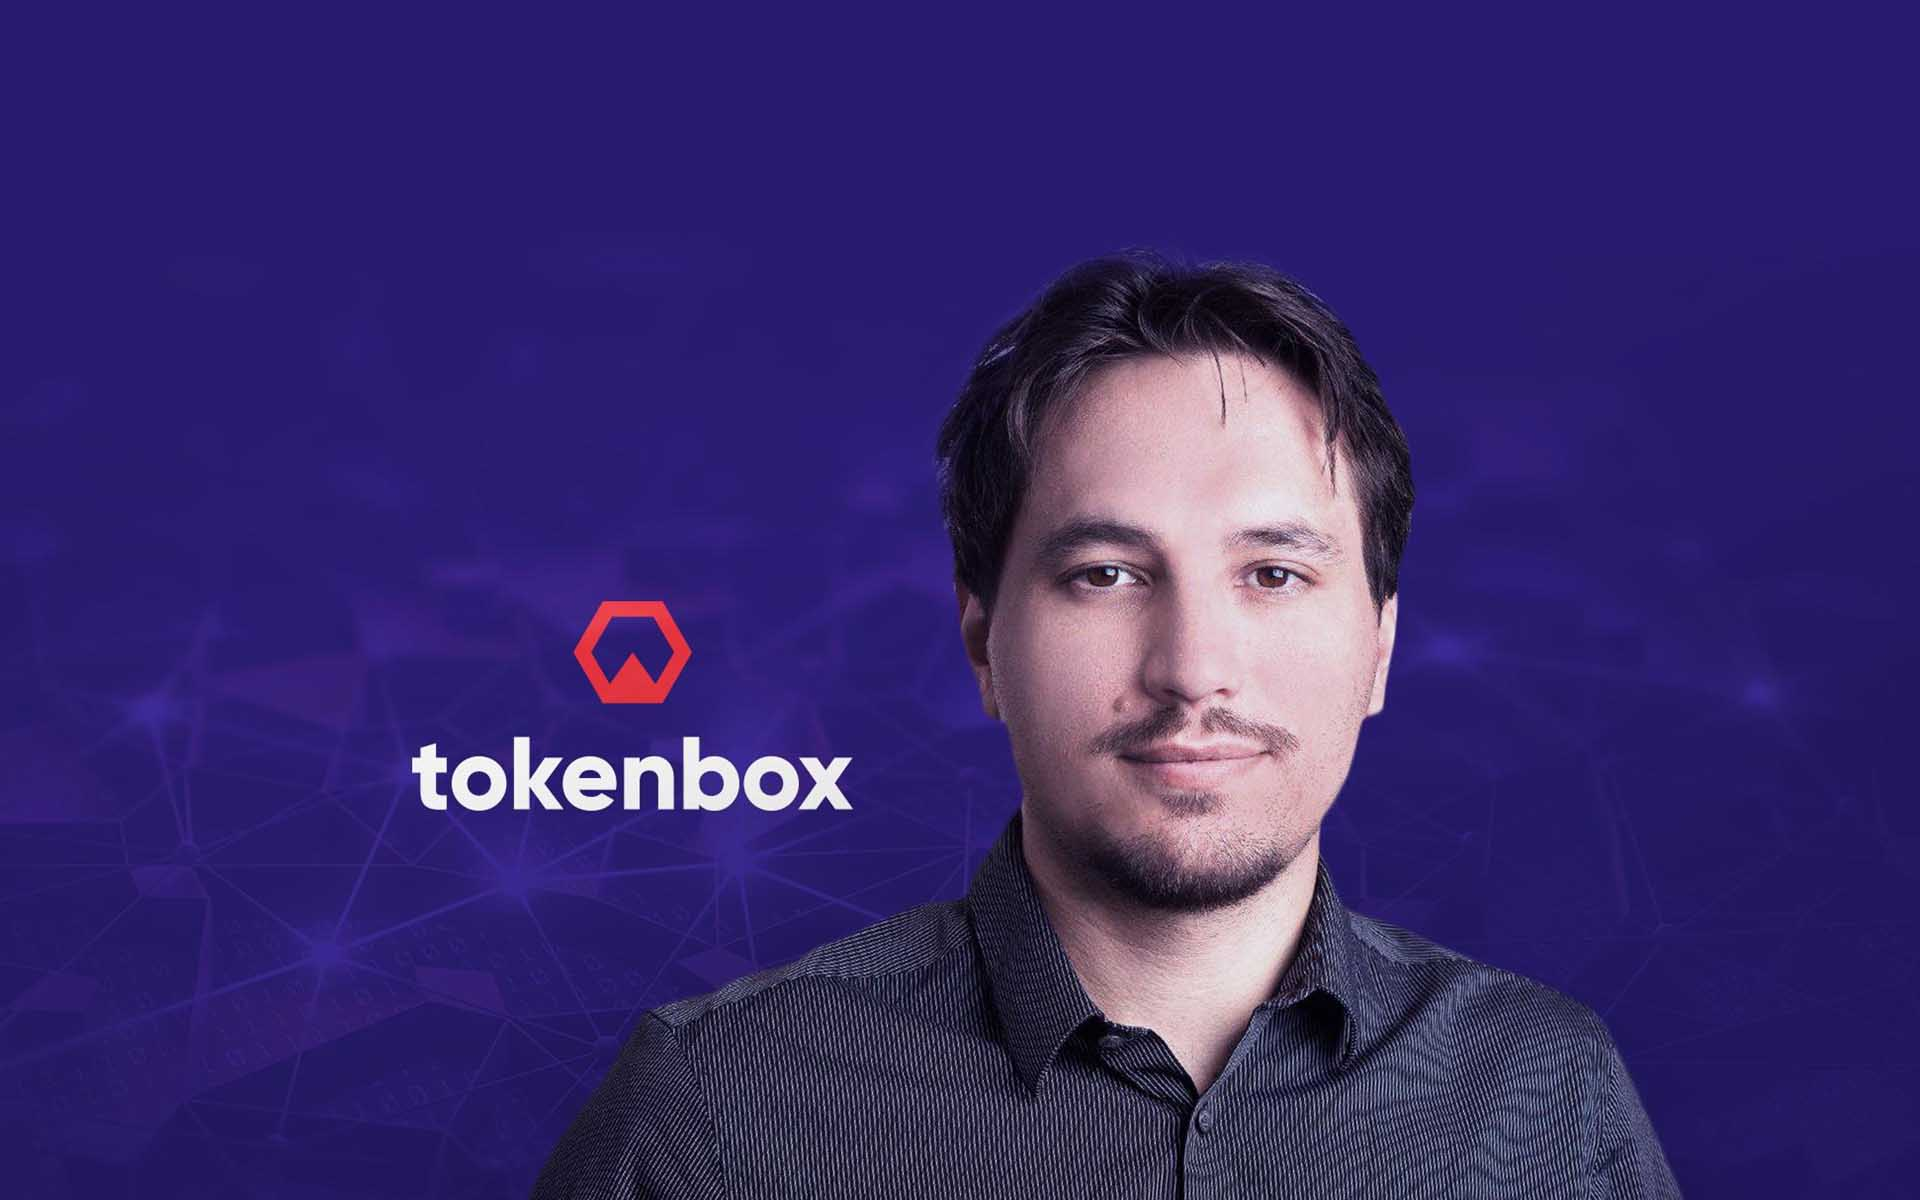 eToro Top Manager Becomes Tokenbox CEO